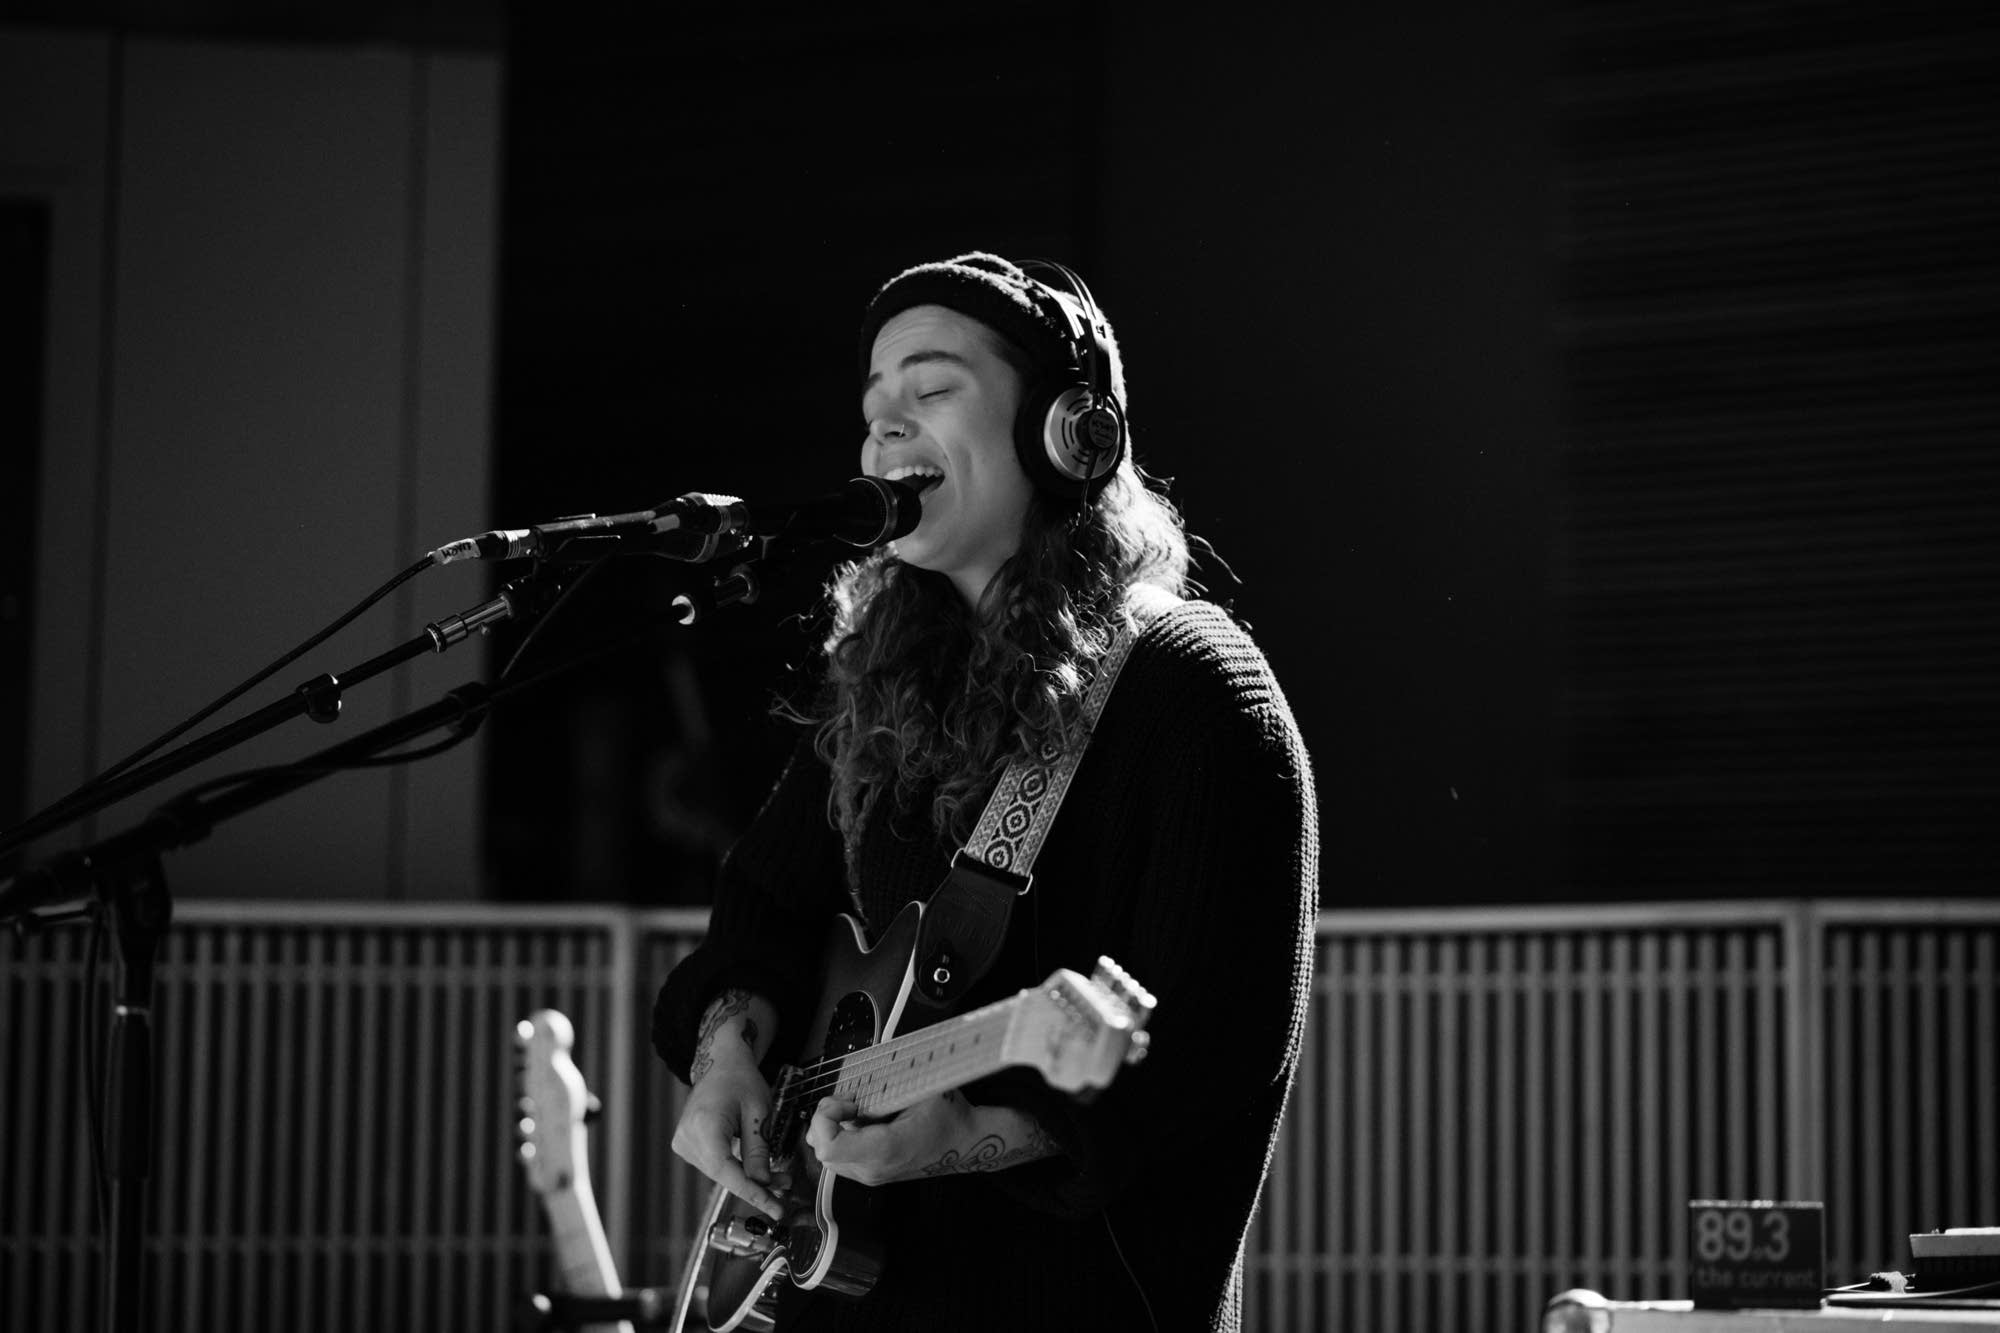 Tash Sultana performs in The Current studio